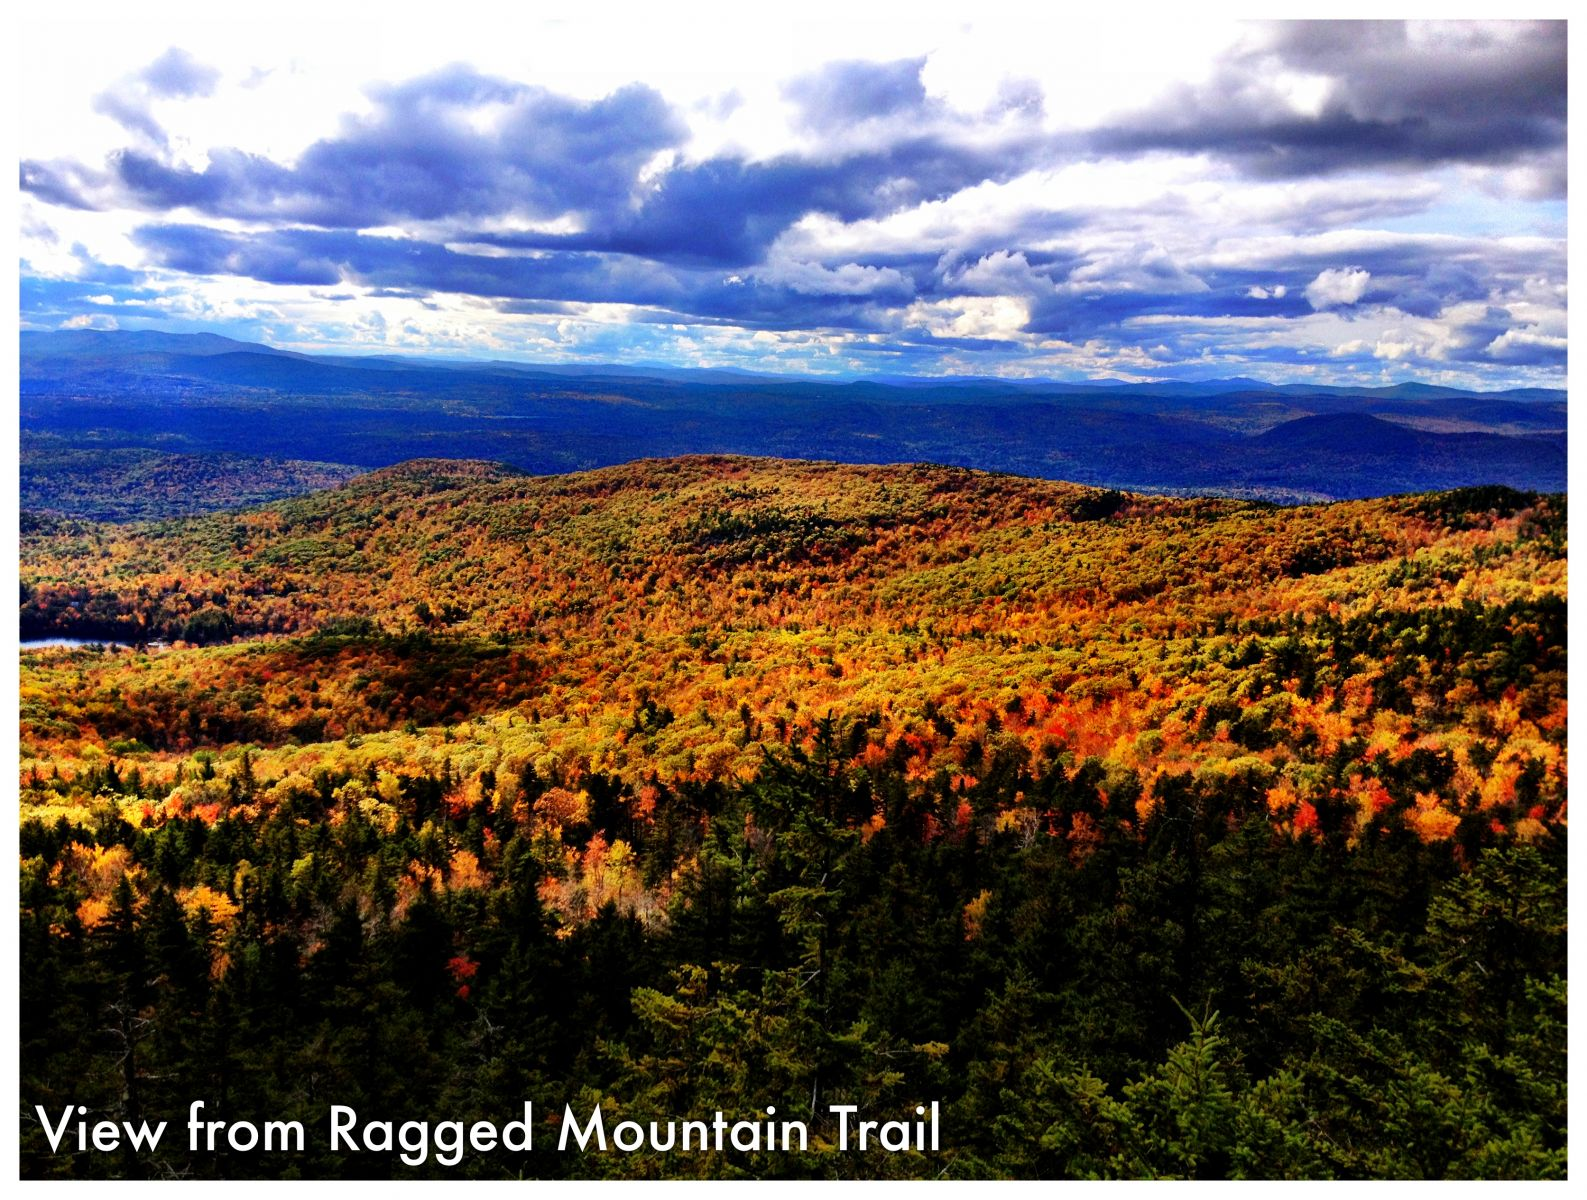 View from the Ragged Mountain Trail